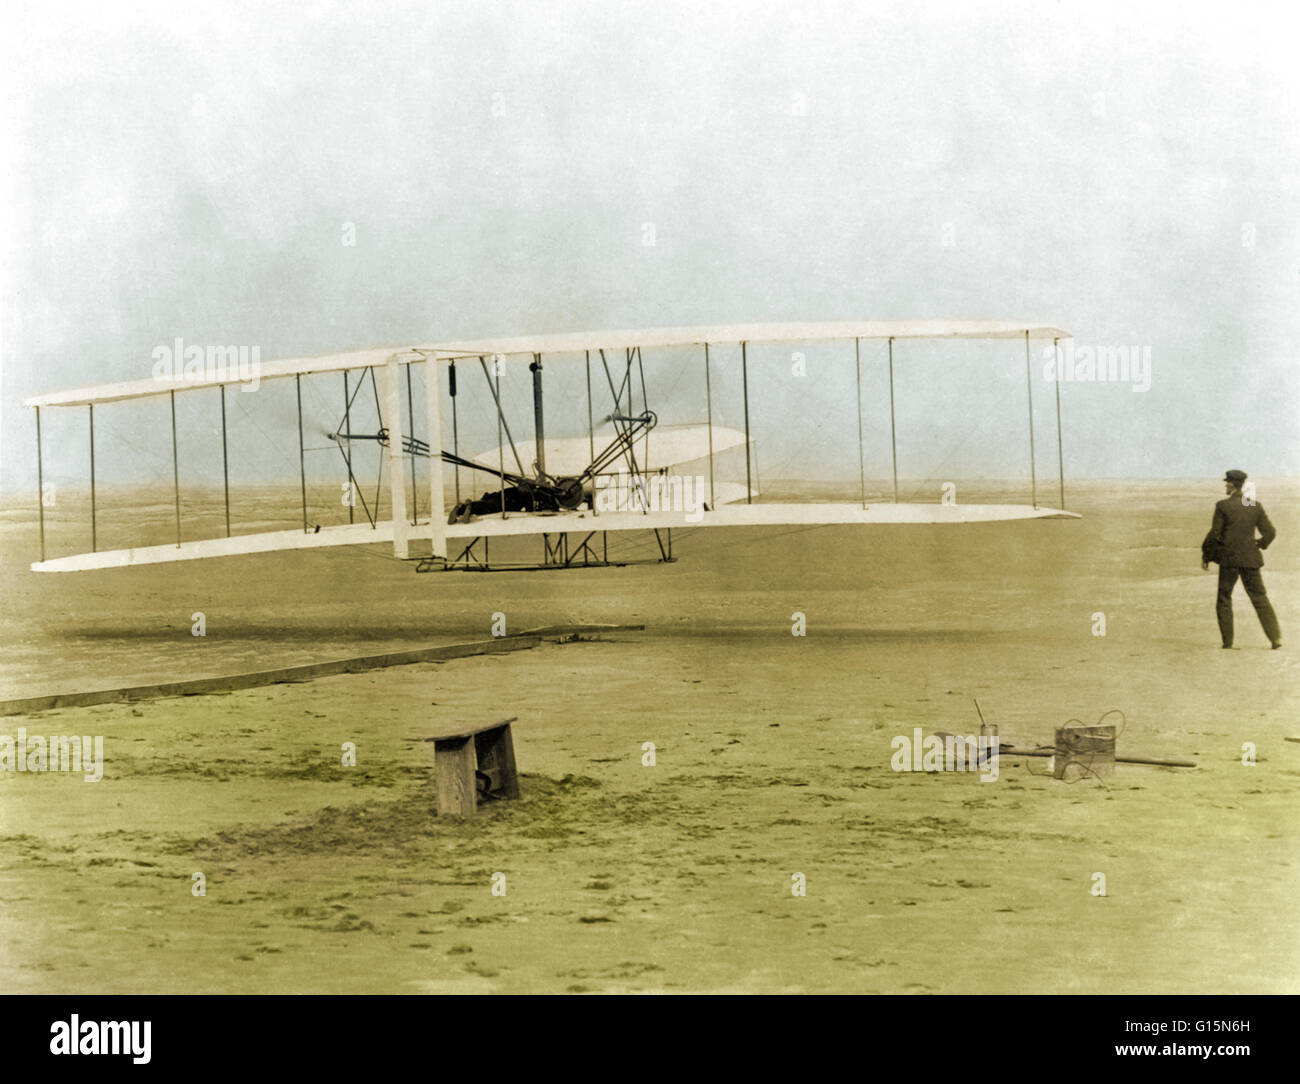 First Wright Brothers Flight intended for the wright brothers' first heavier-than-air flight. on december 17